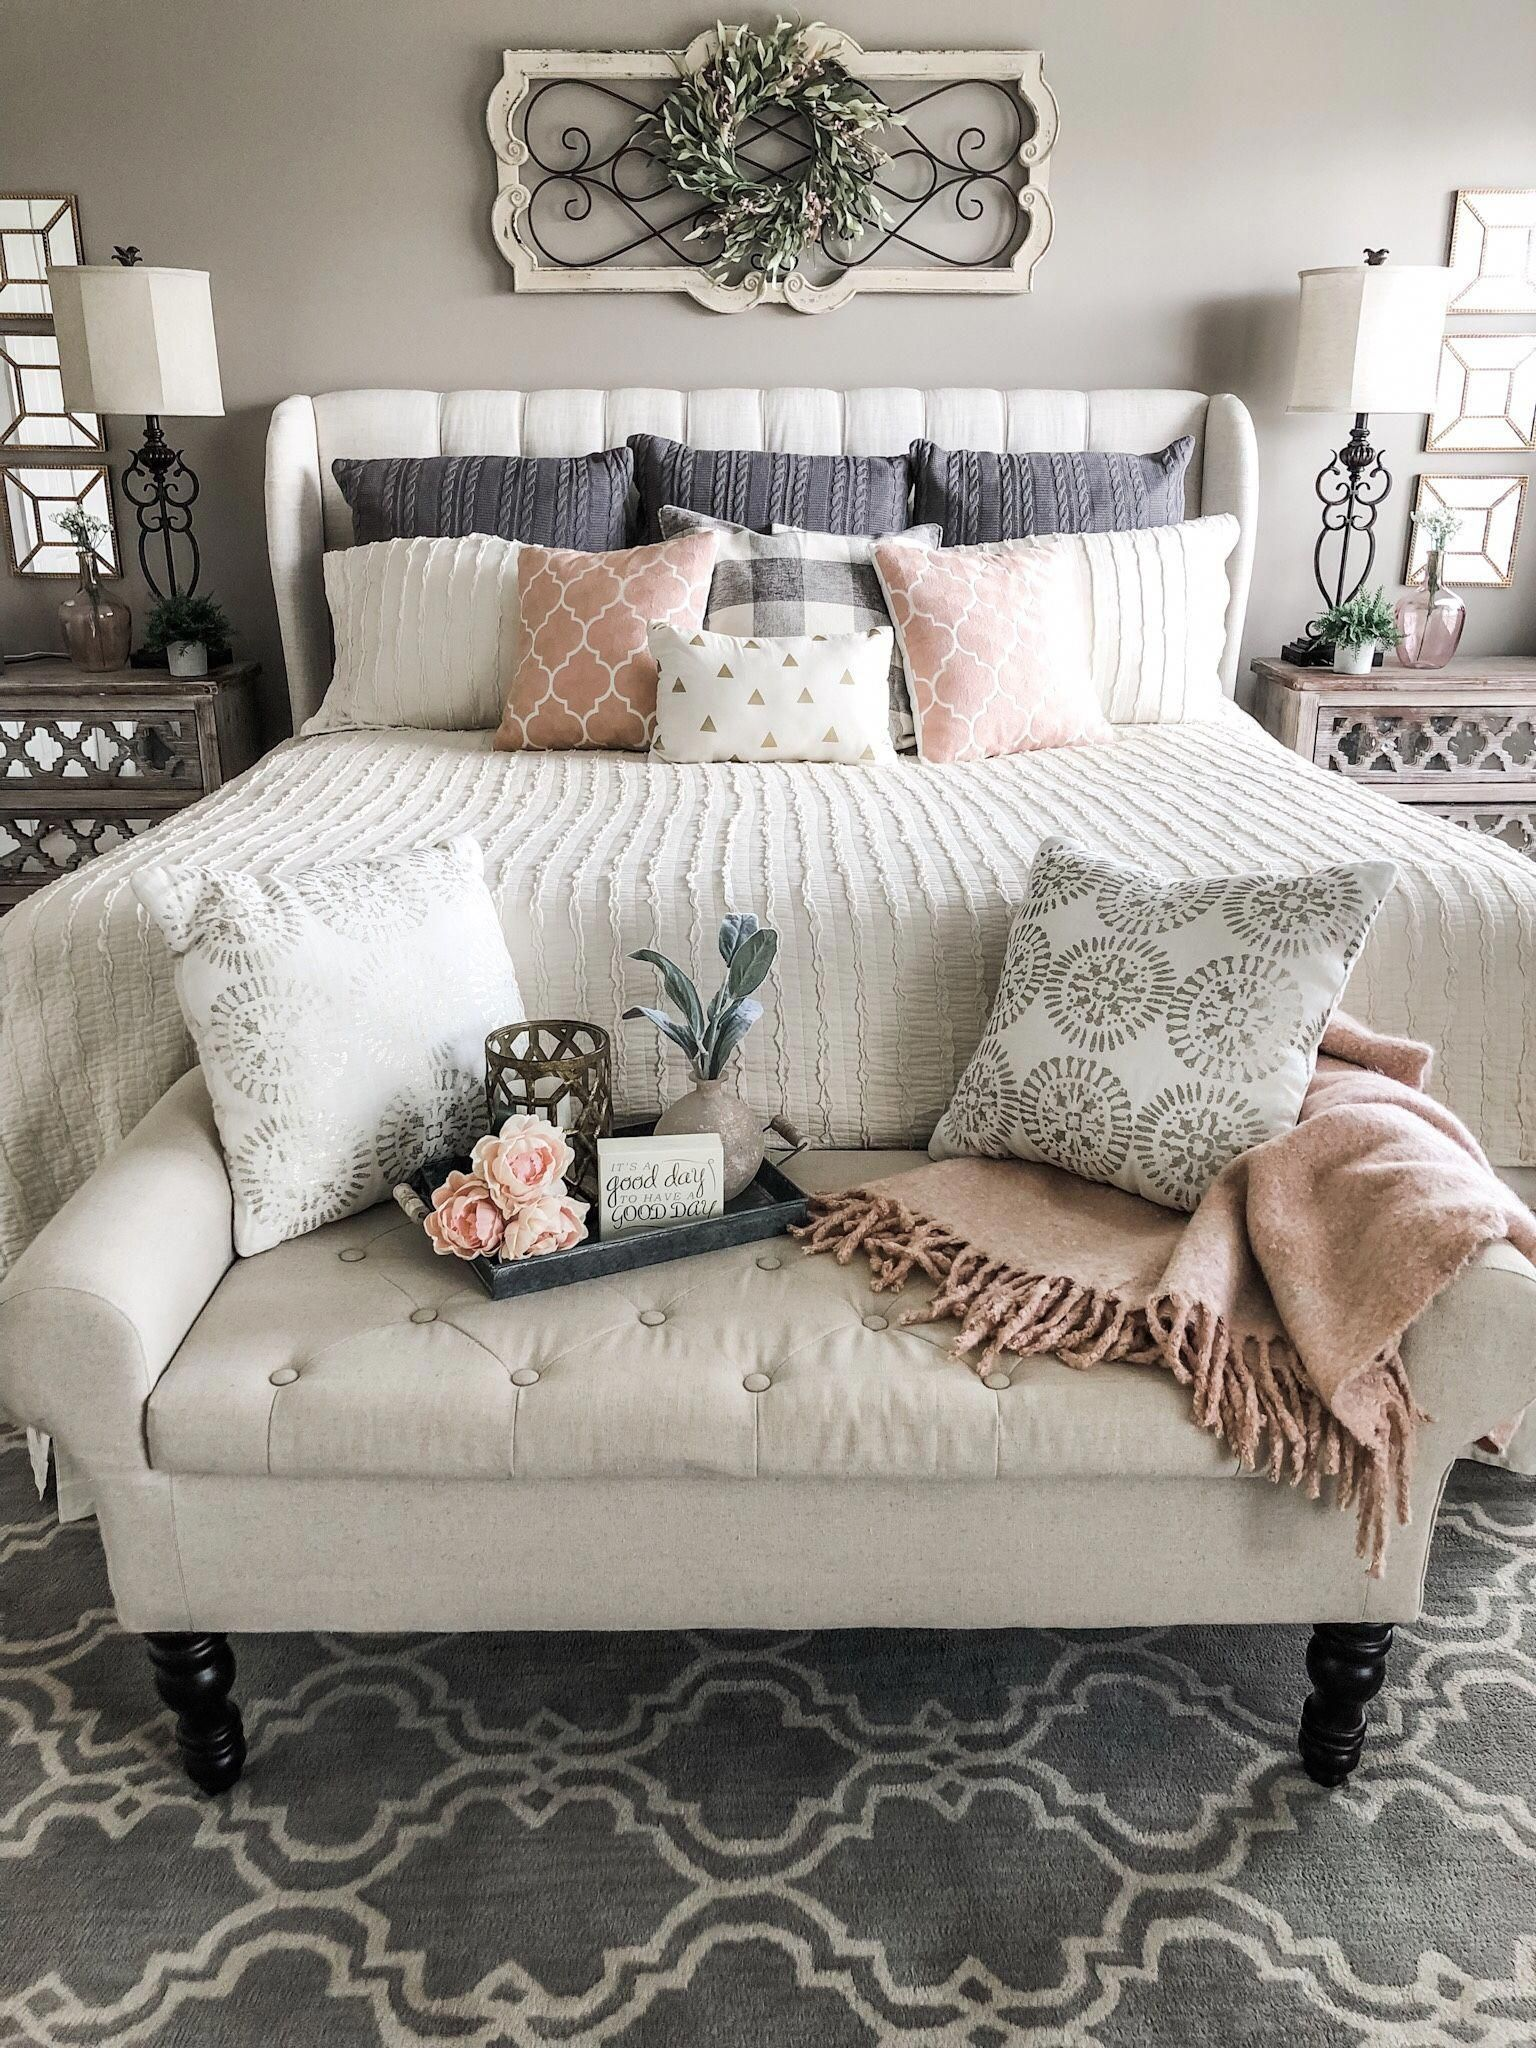 40 Gorgeous Small Master Bedroom Ideas In 2020 Decor Inspirations In 2020 Master Bedrooms Decor Restful Bedrooms Interior Design Bedroom Teenage